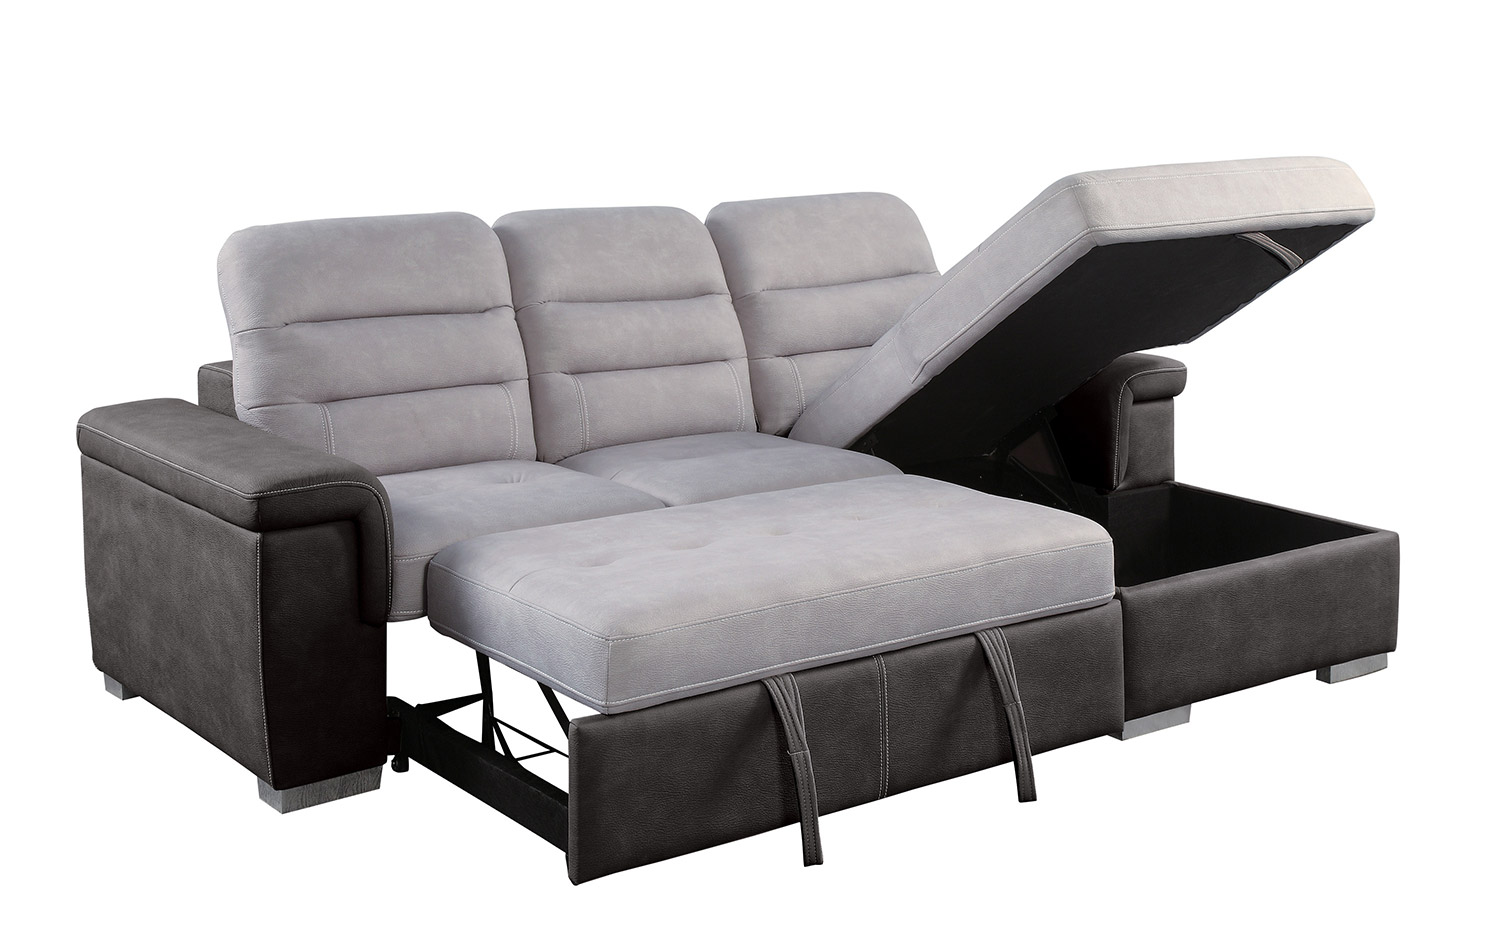 Homelegance Alfio Sectional with Pull-out Bed and Hidden Storage - Silver/Chocolate